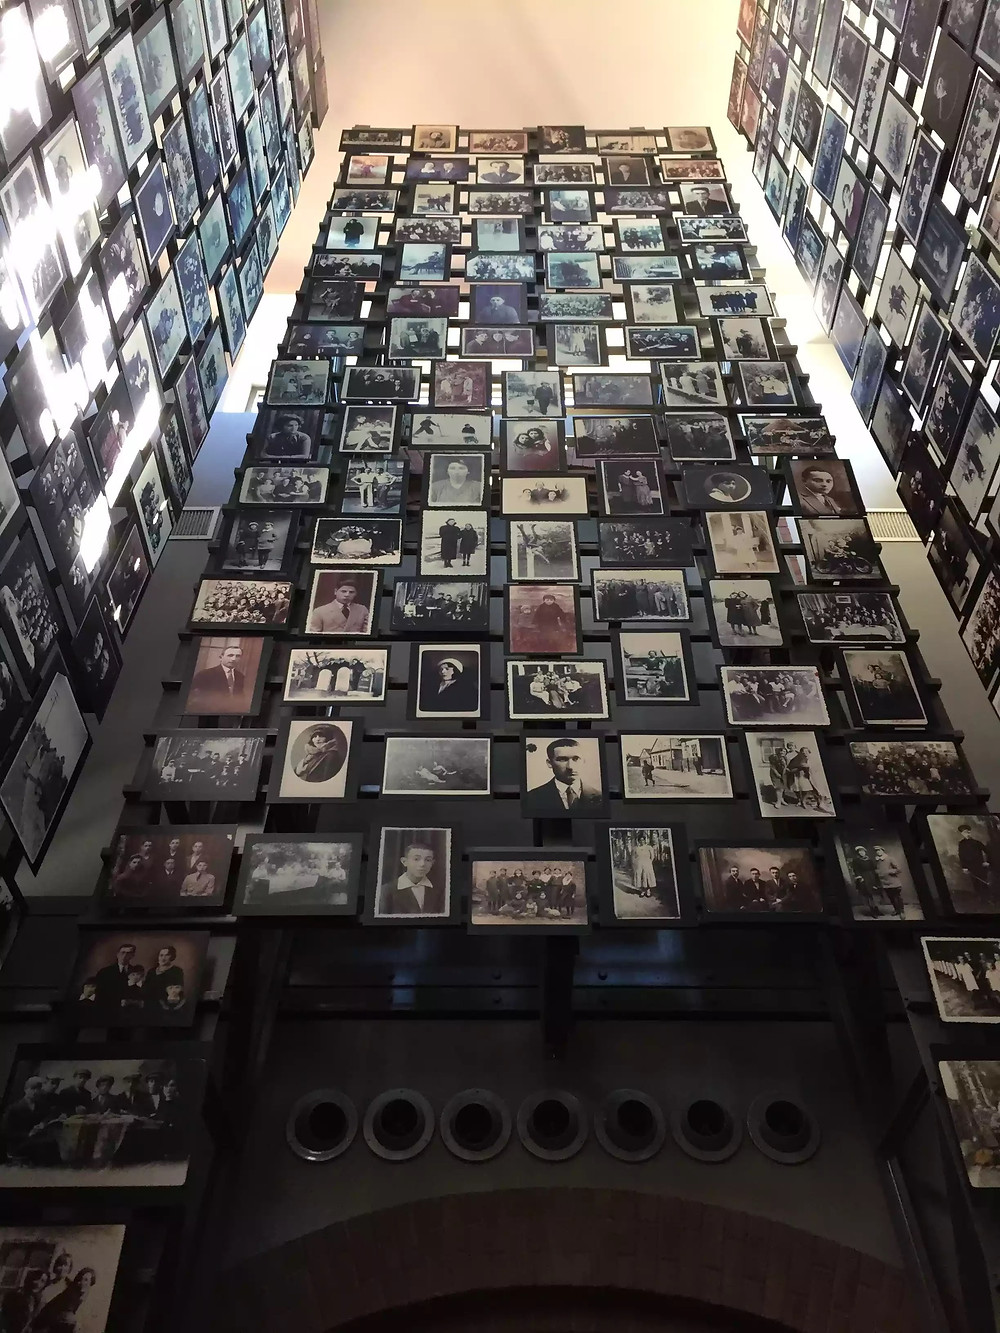 Tower of Faces in the United States Holocaust Memorial Museum